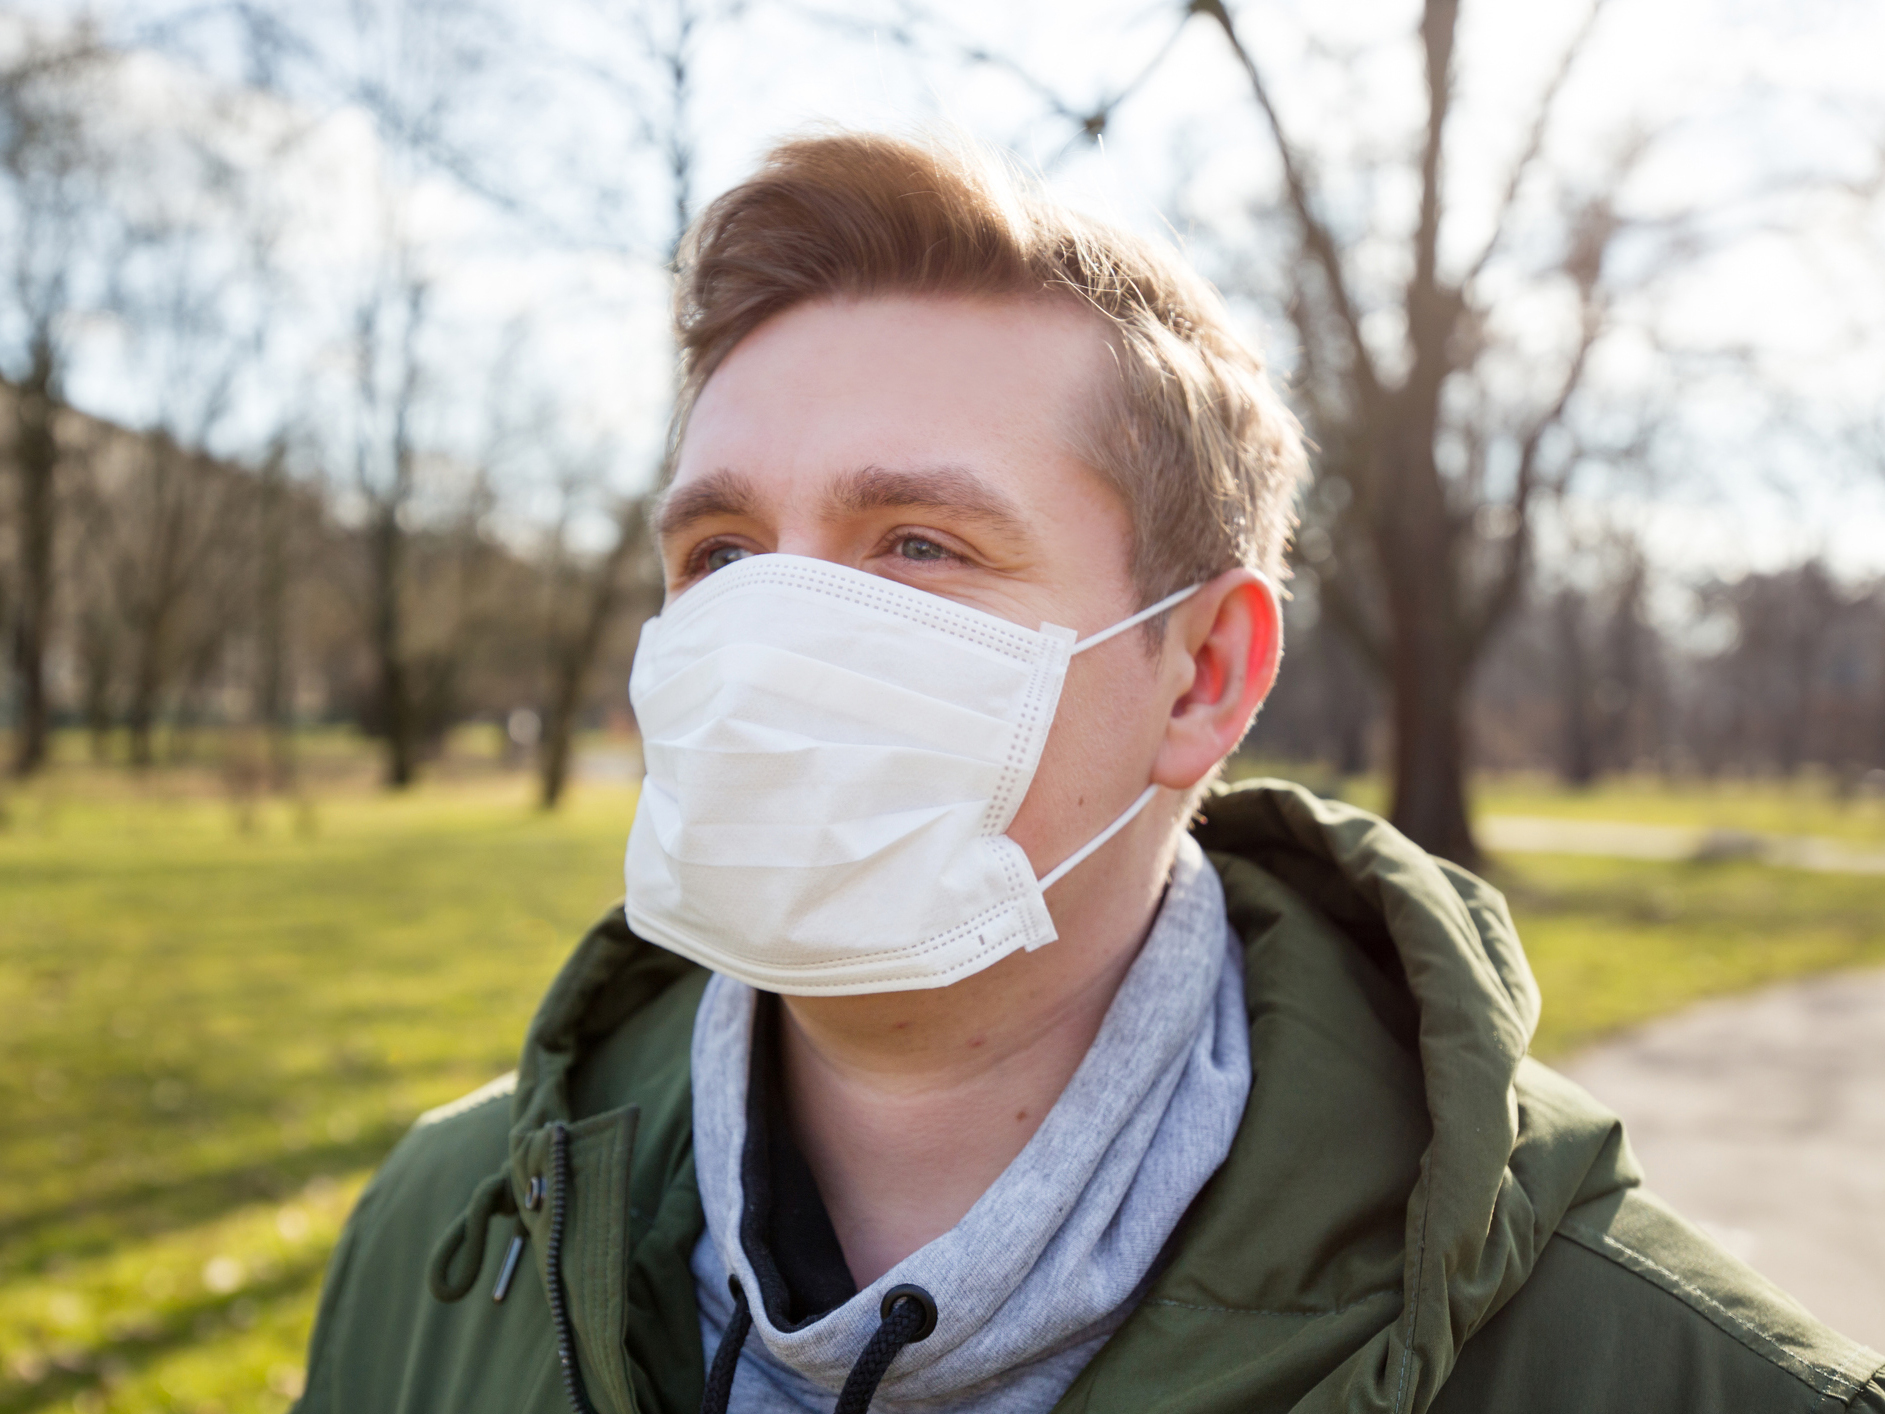 How to prevent skin damage from wearing a face mask during the pandemic